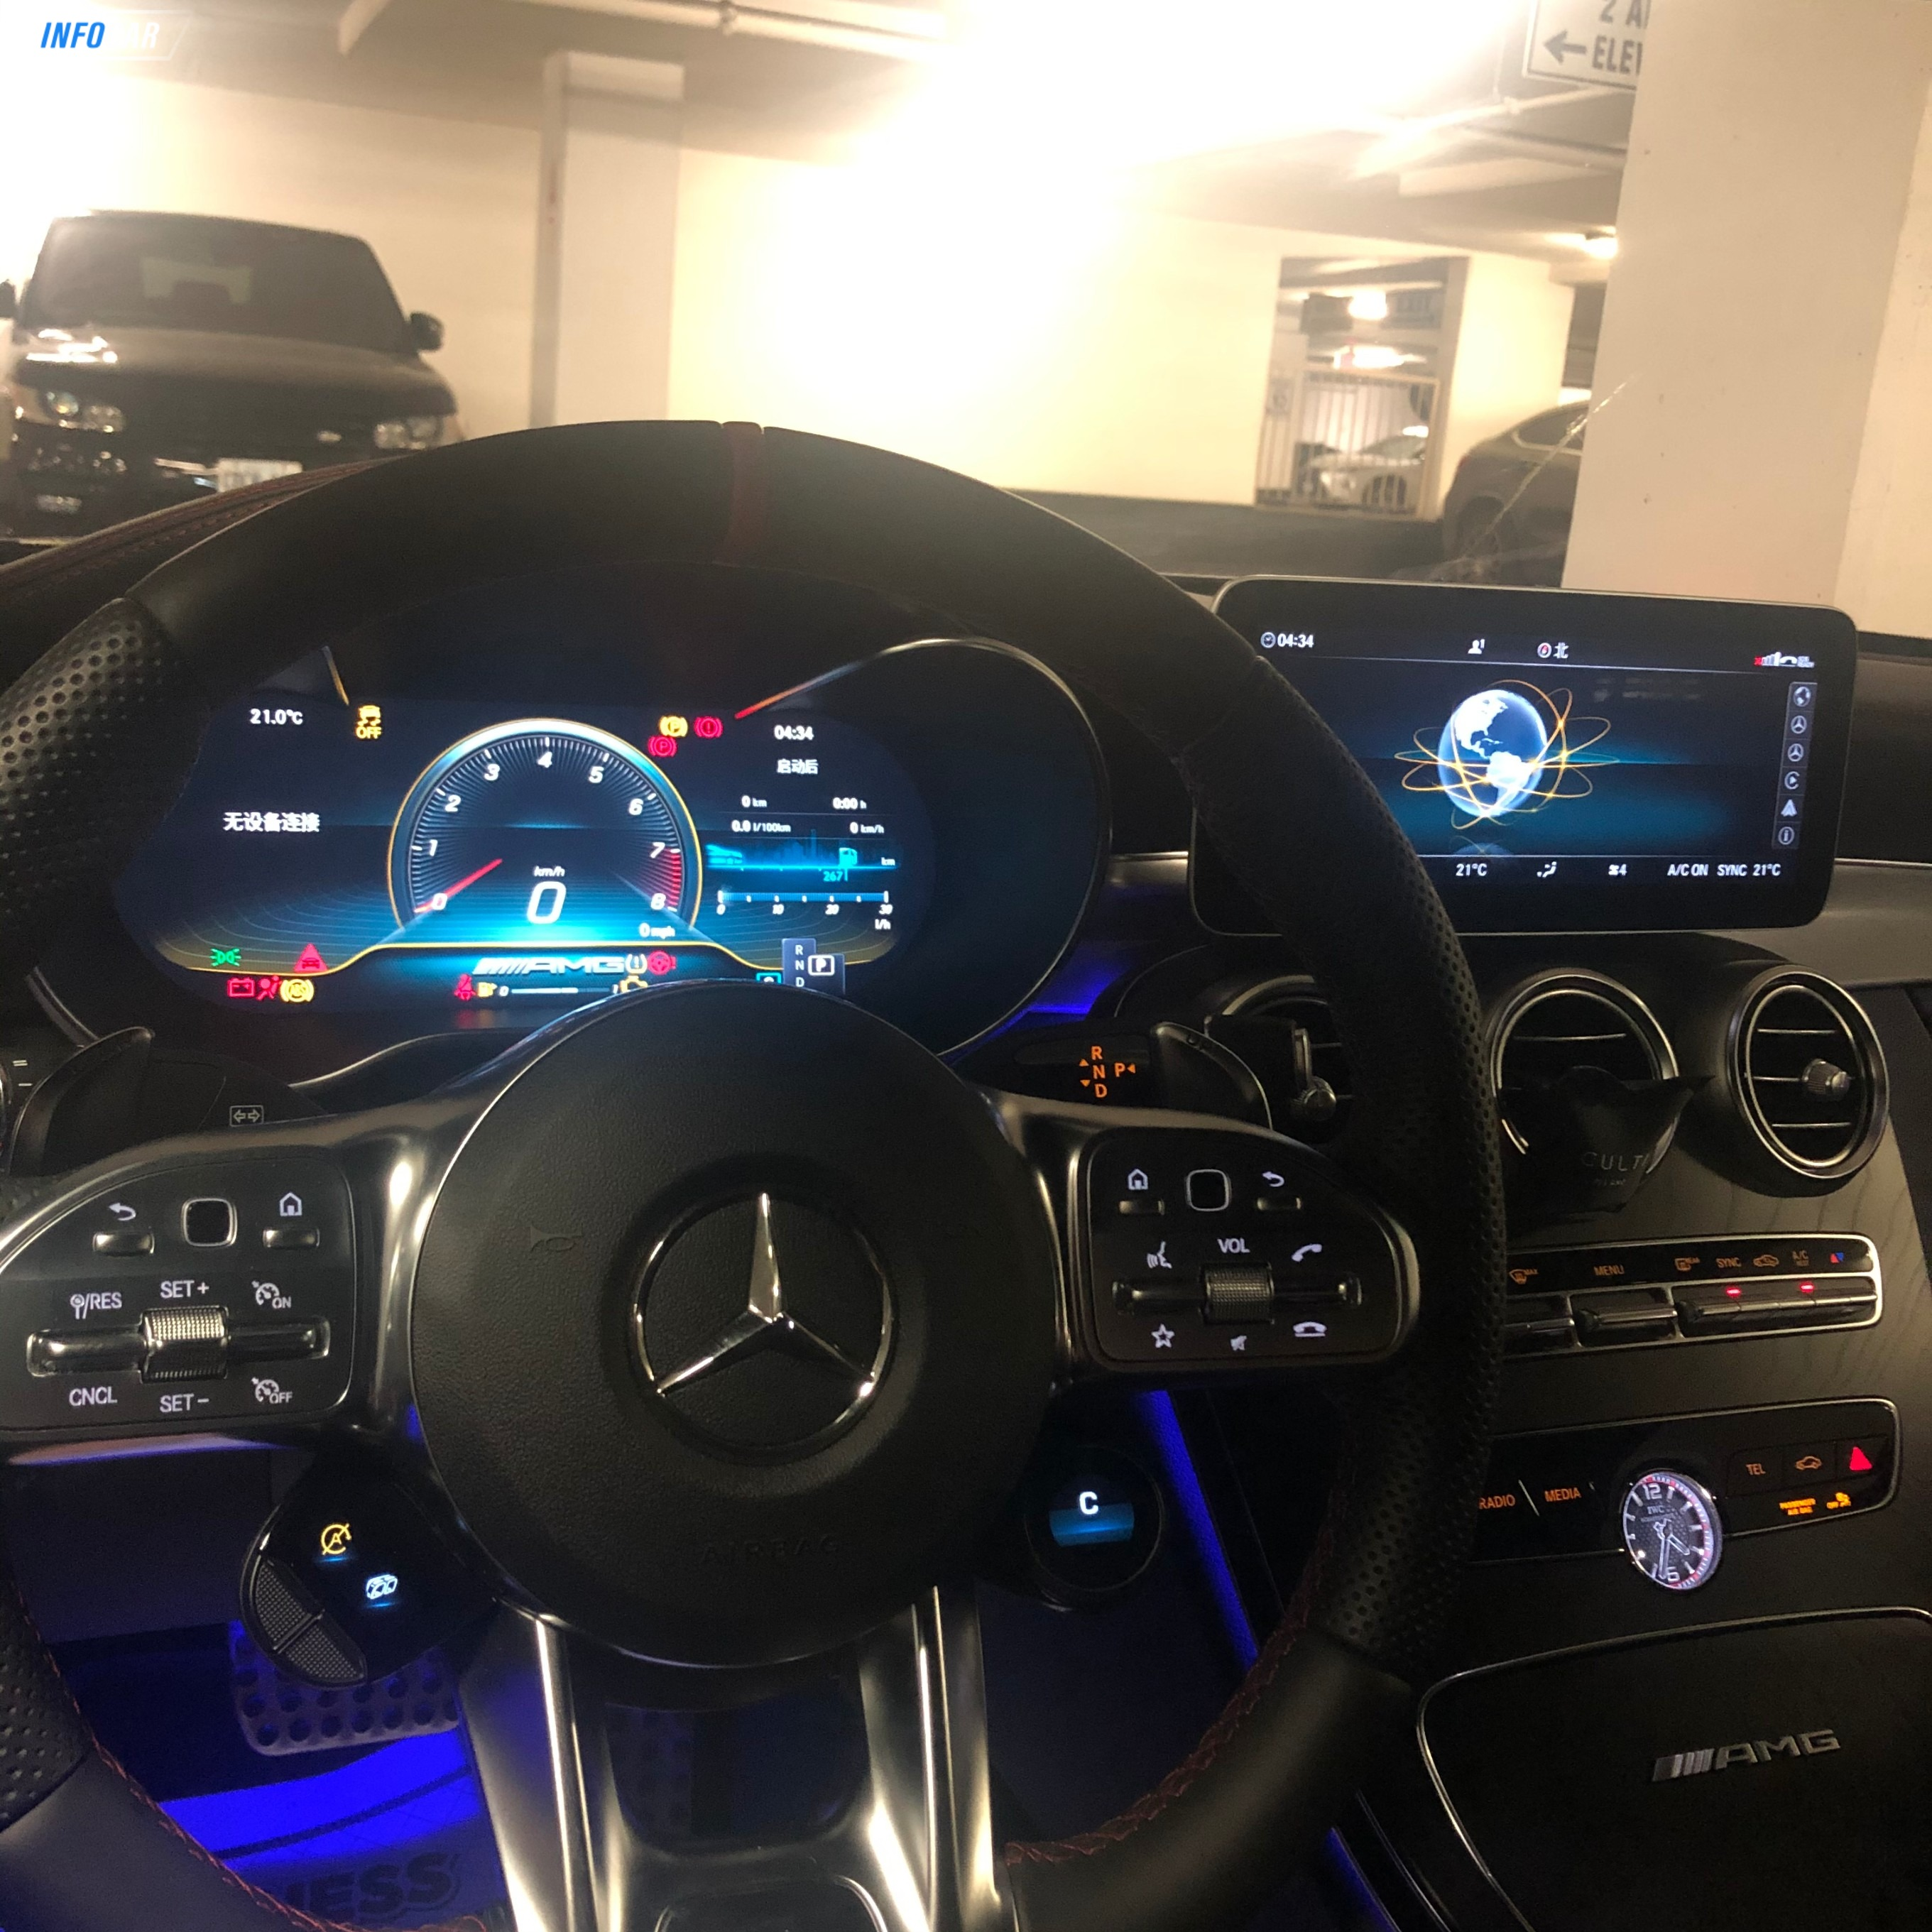 2020 Mercedes-Benz C-Class C63S COUPE - INFOCAR - Toronto's Most Comprehensive New and Used Auto Trading Platform